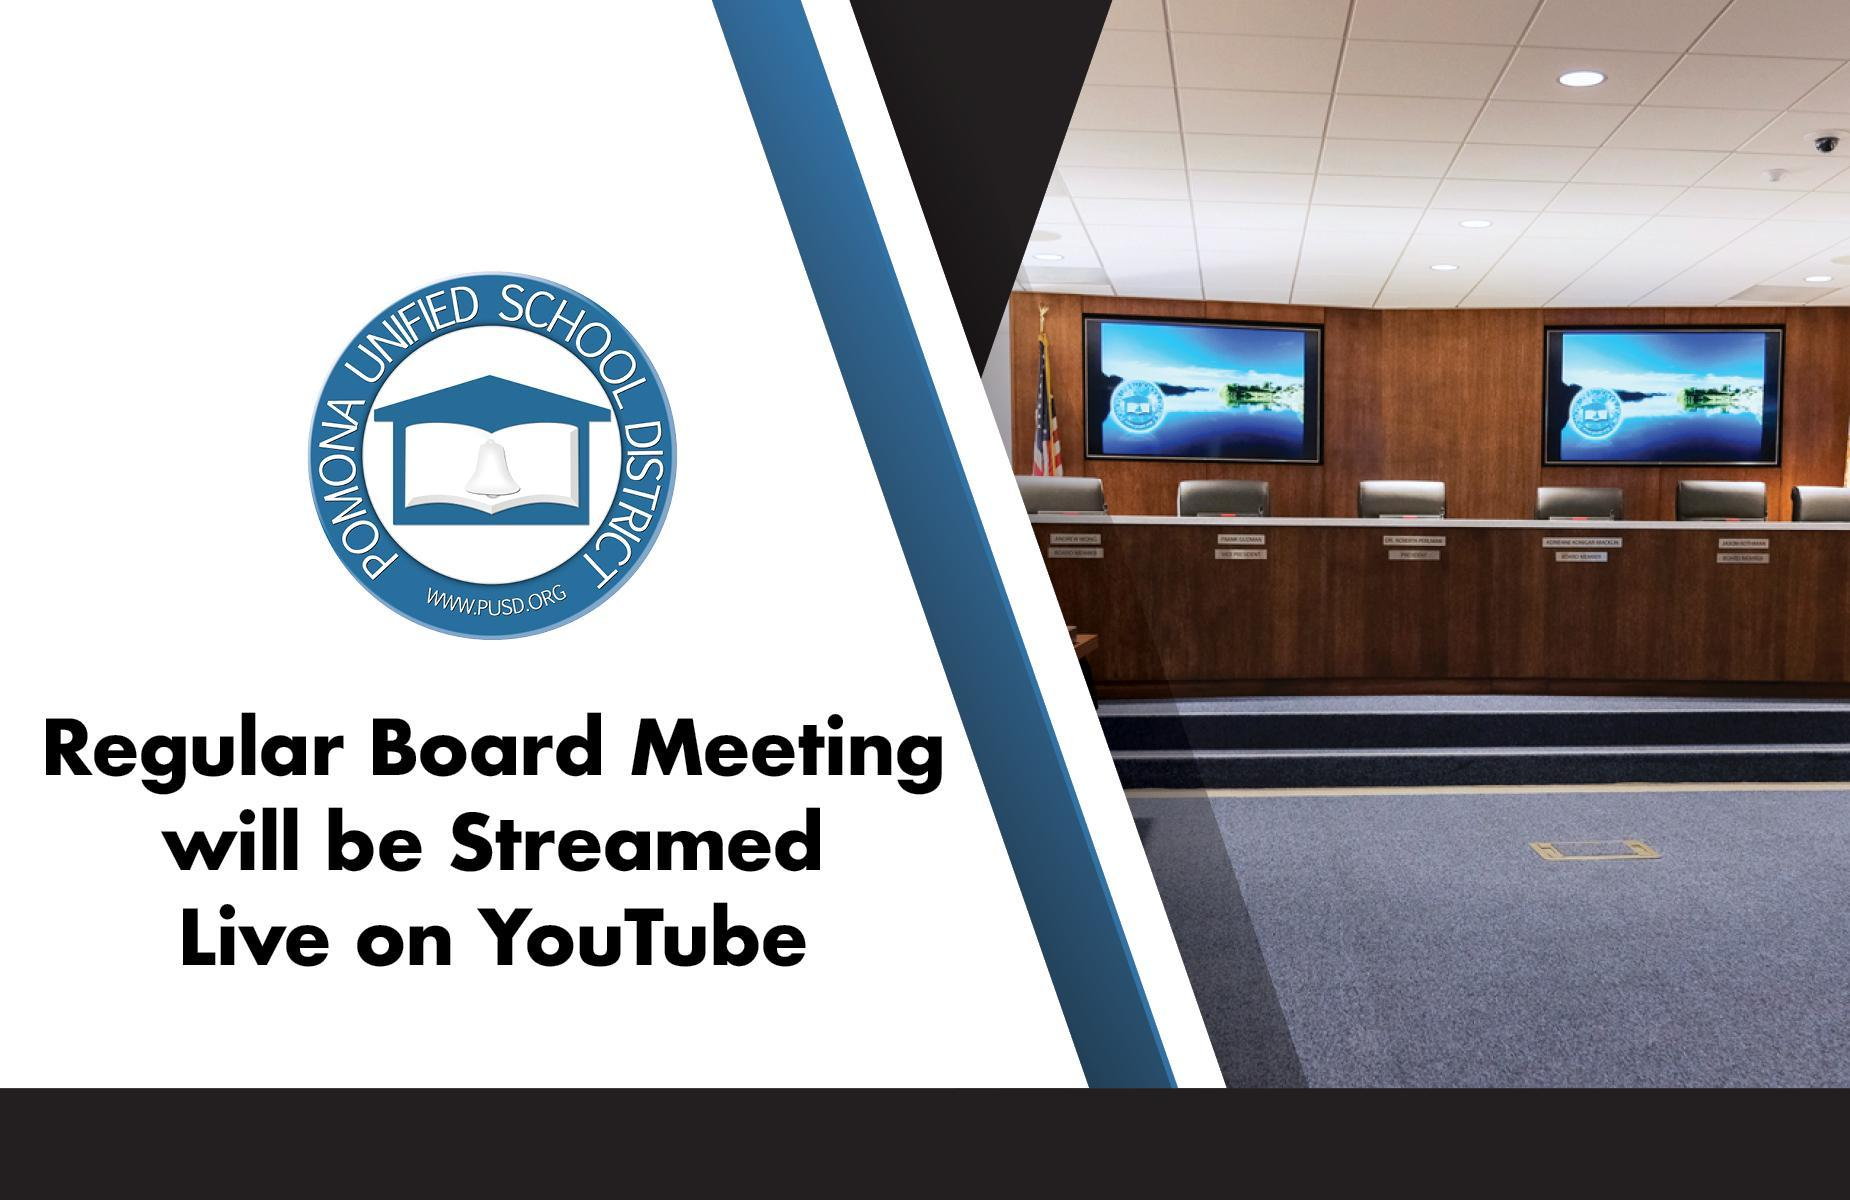 Regular Board Meeting will be streamed live on districts youtube channel